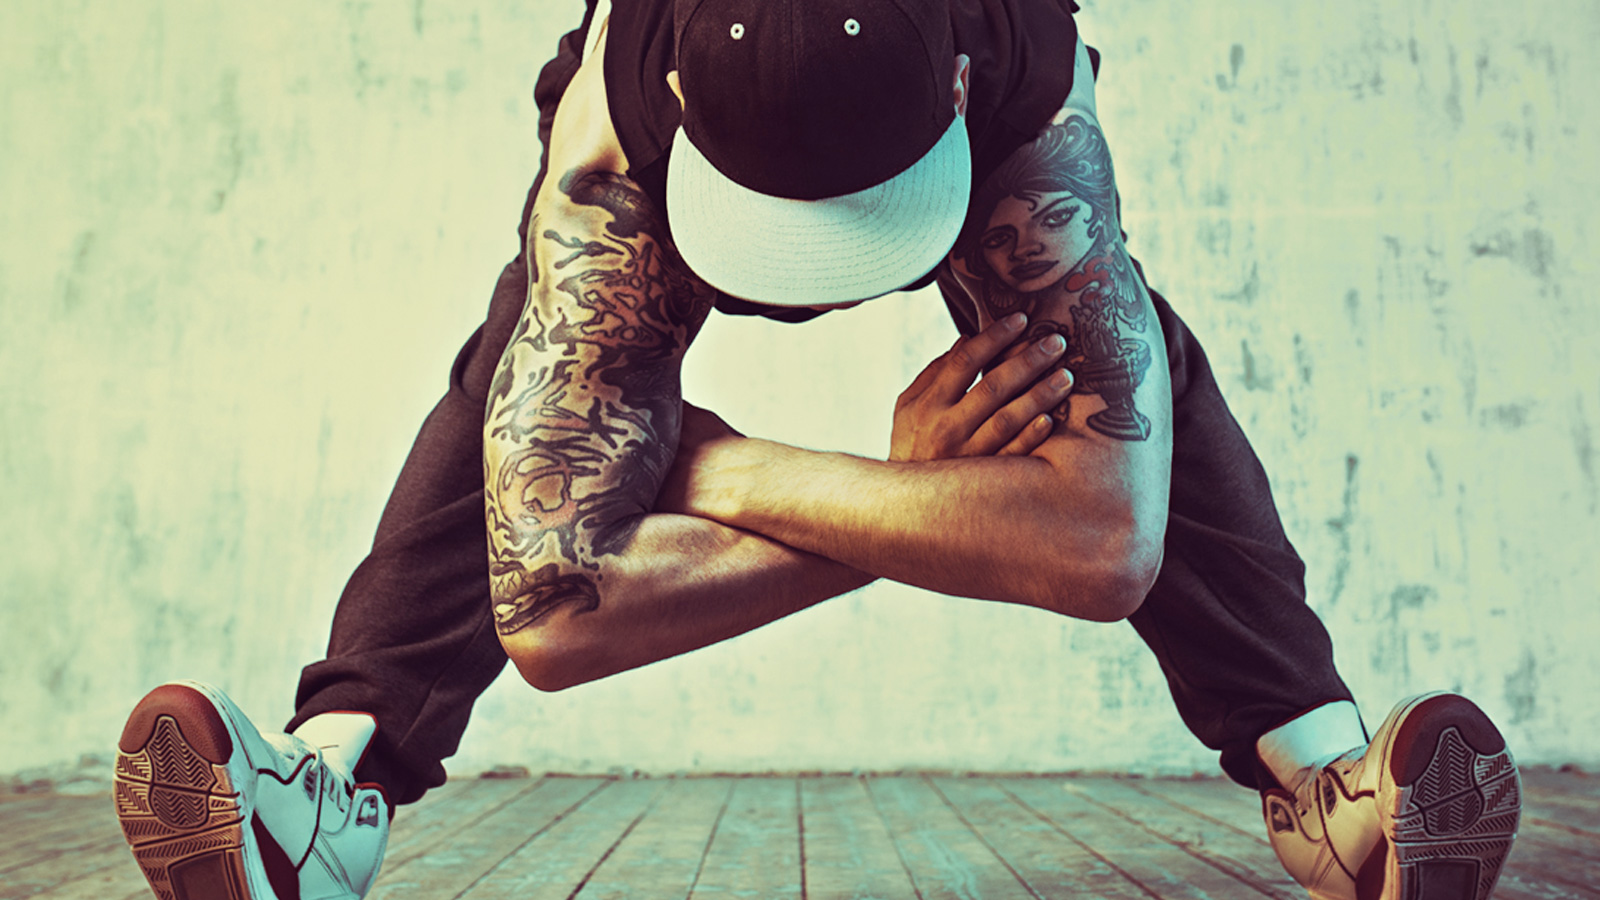 breakdance tatto street